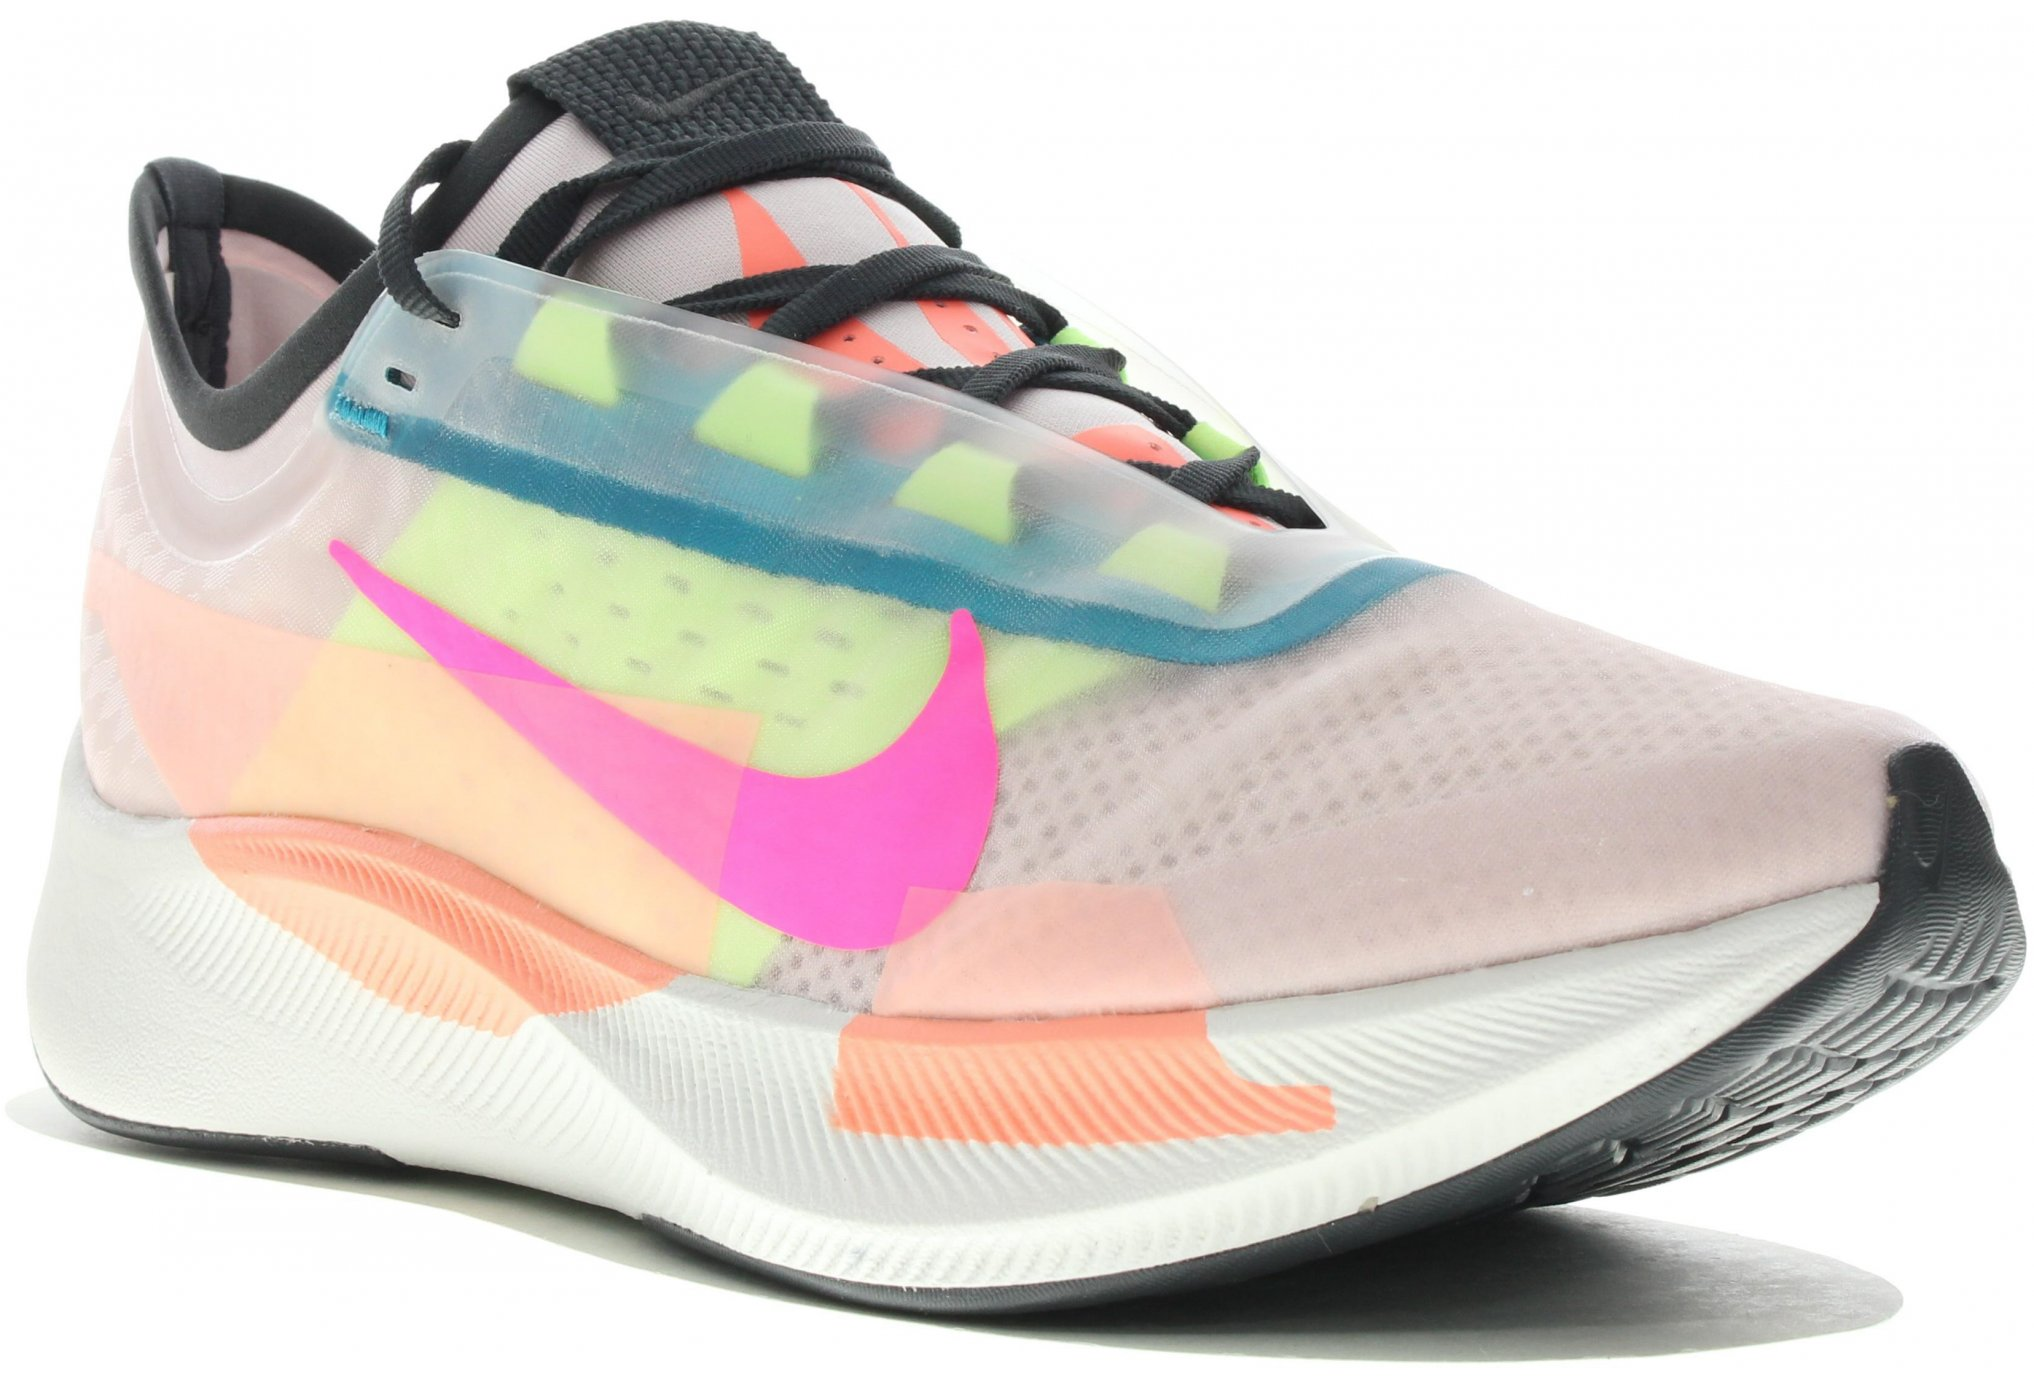 Nike Zoom Fly 3 Premium Chaussures running femme